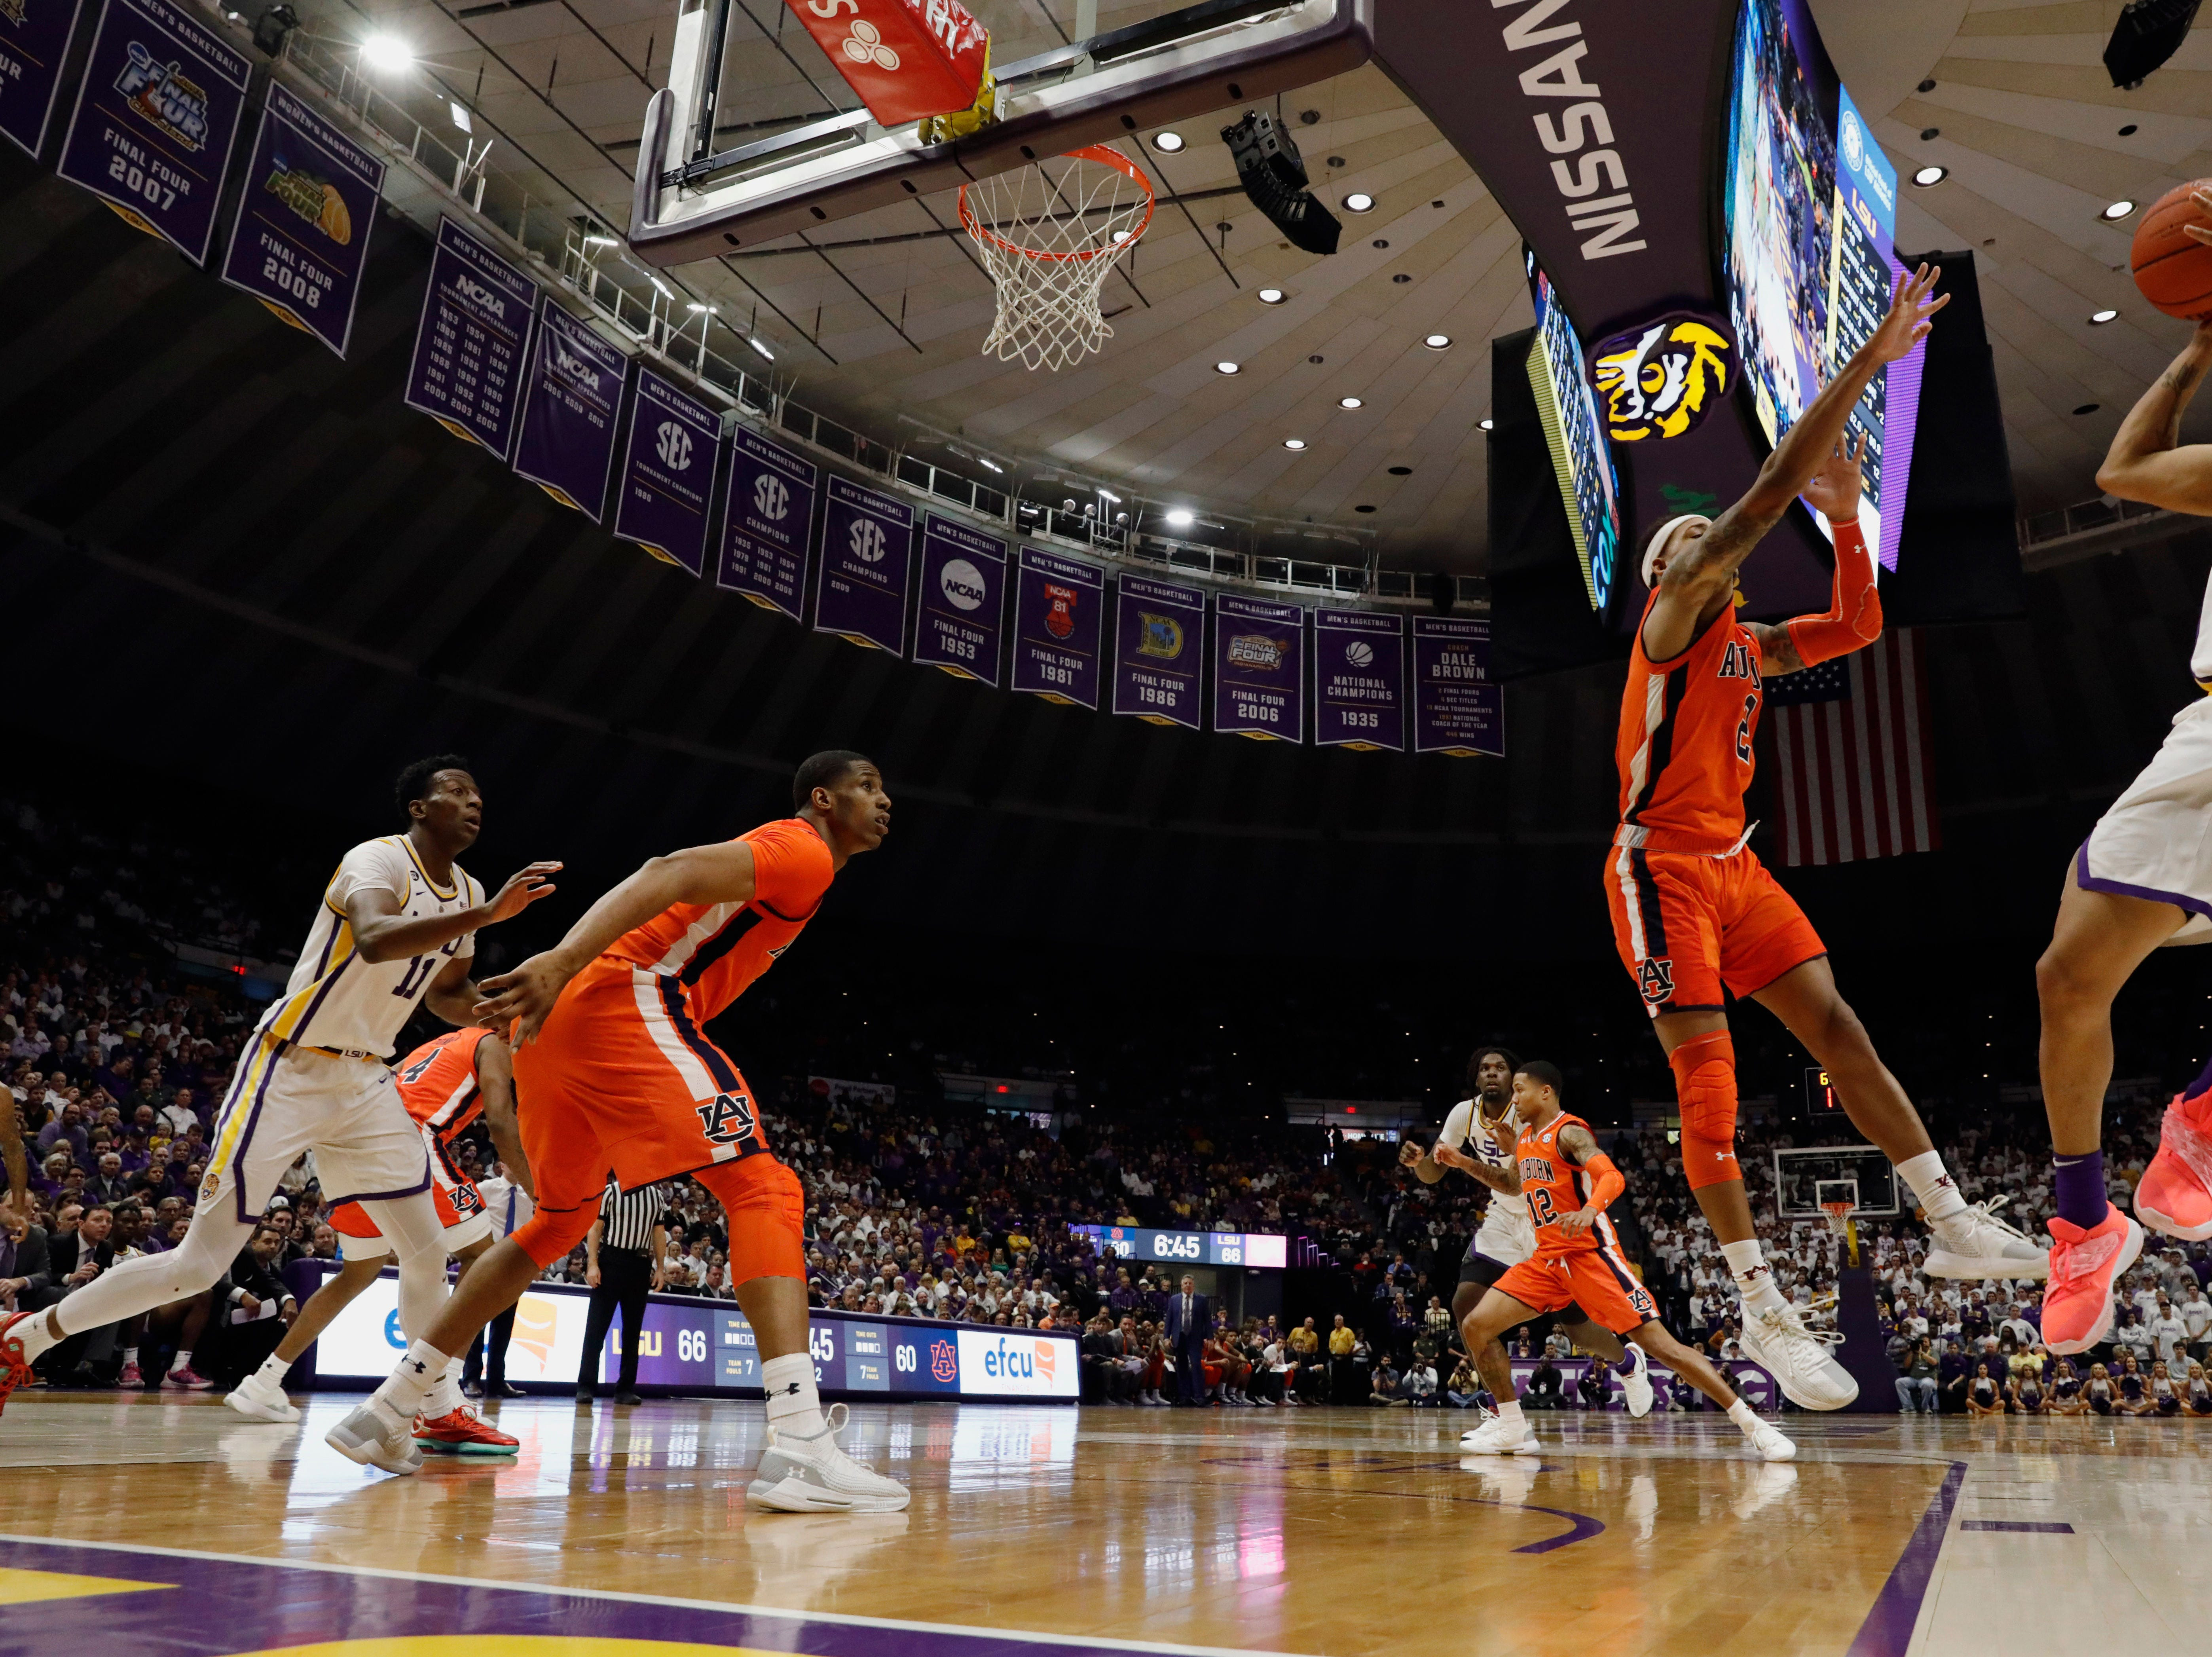 Feb 9, 2019; Baton Rouge, LA, USA; LSU Tigers guard Tremont Waters (3) shoots a jump shot against Auburn Tigers guard Bryce Brown (2) in the second half at Maravich Assembly Center. Mandatory Credit: Stephen Lew-USA TODAY Sports